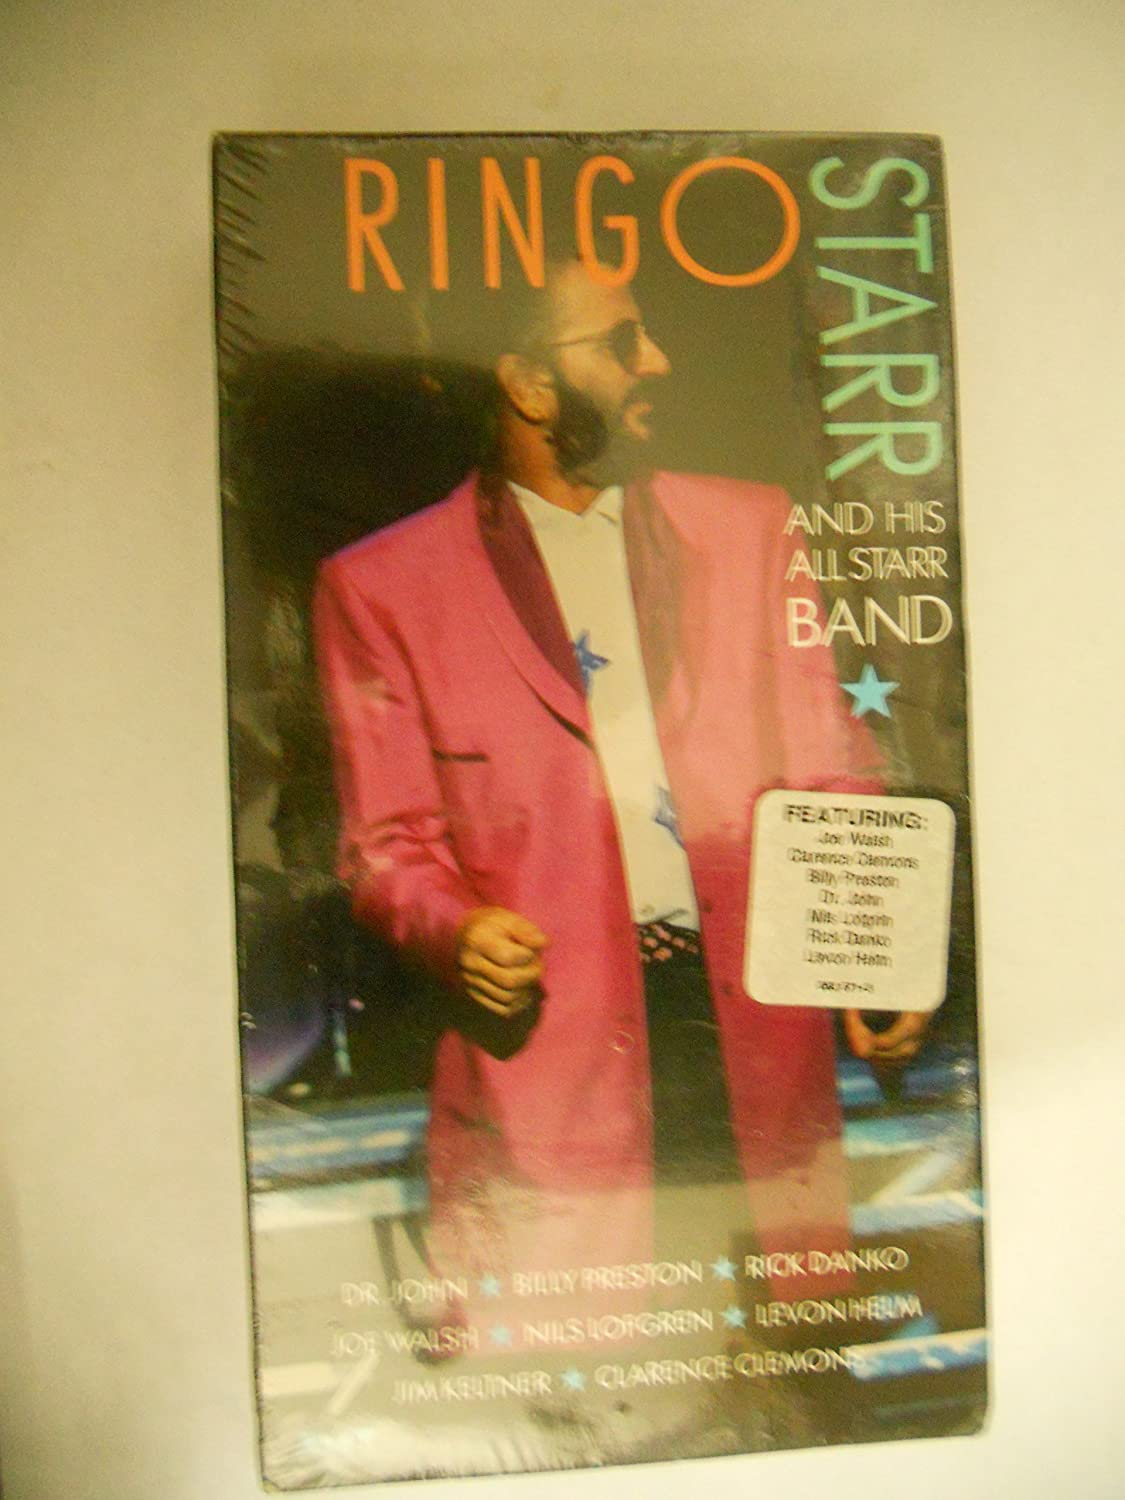 Ringo Starr and his All Starr Band [VHS]